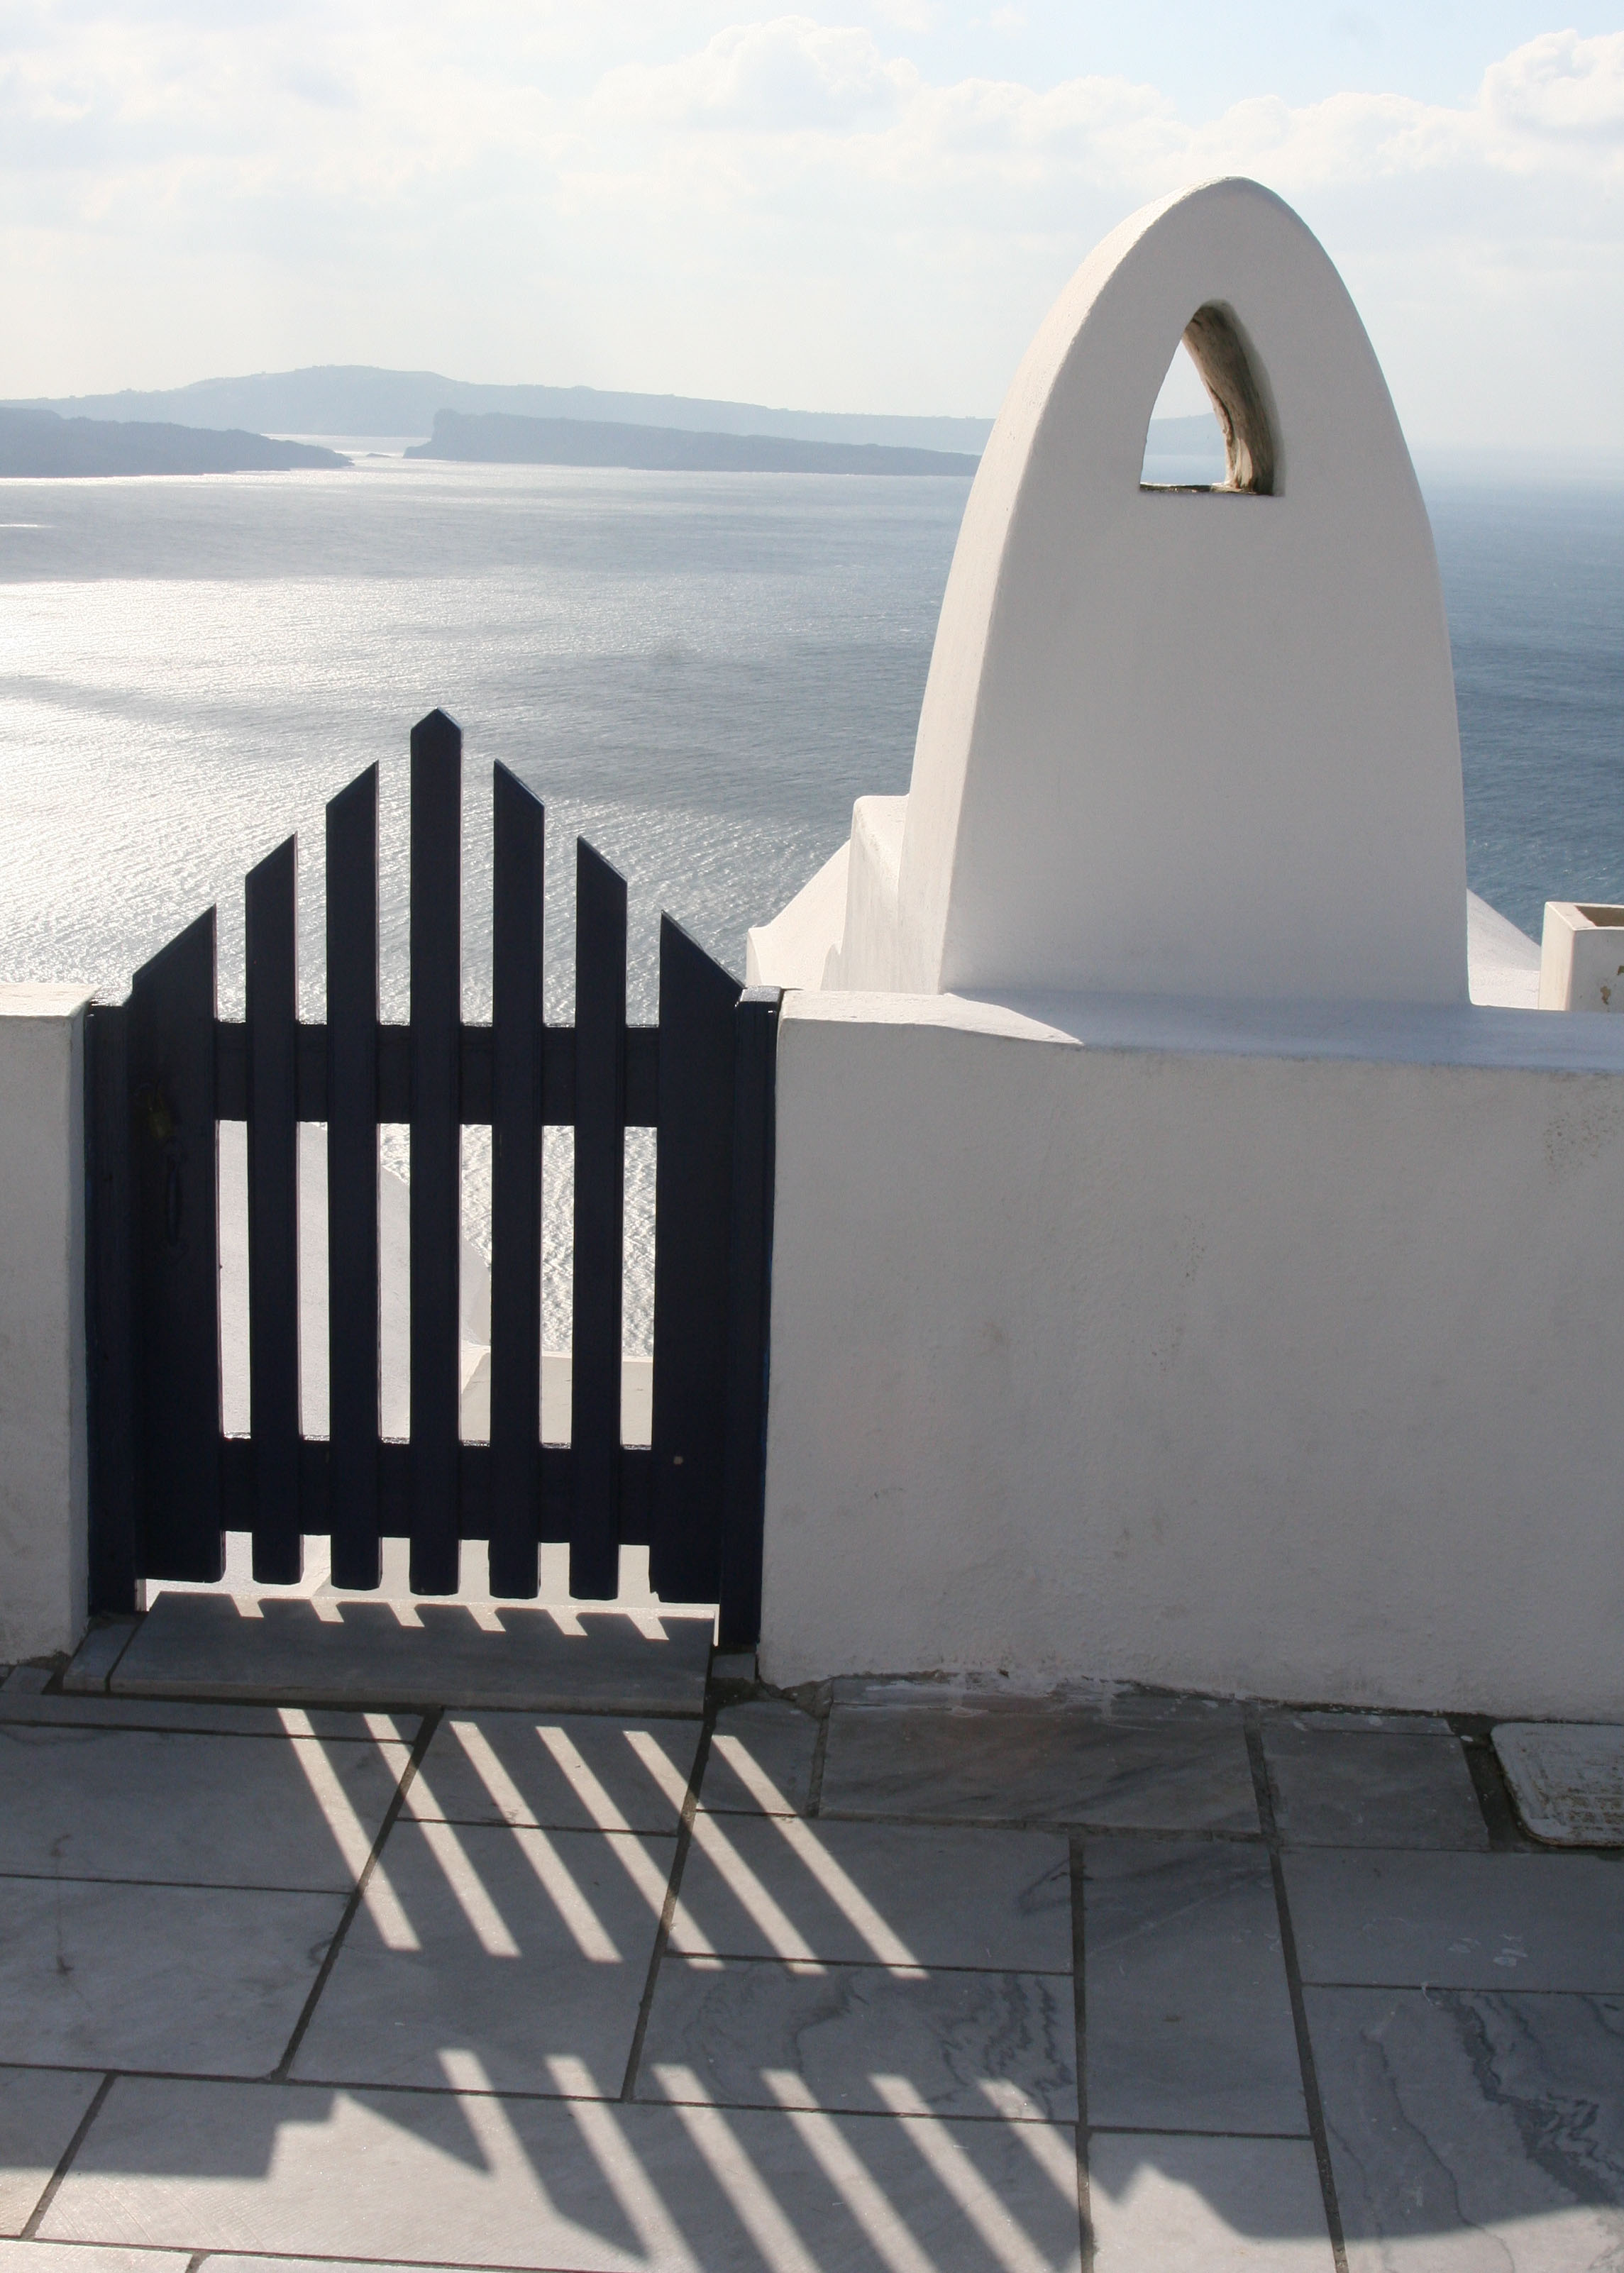 This simple gate in Oia with its dramatic shadows was quite beautiful.